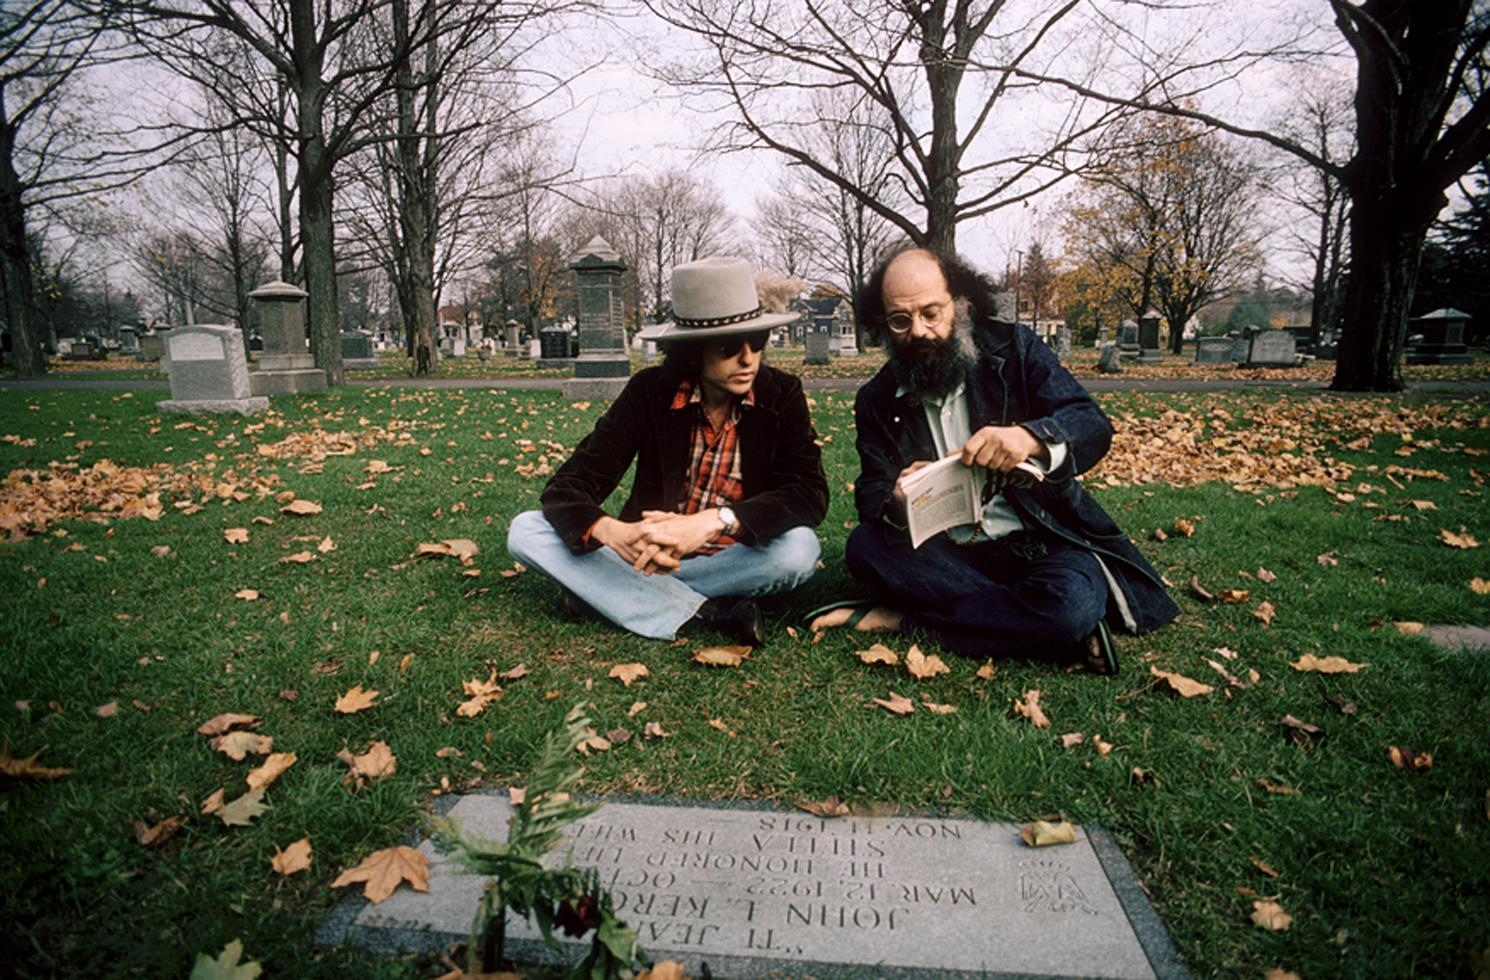 dylan and ginsberg at kerouac's grave